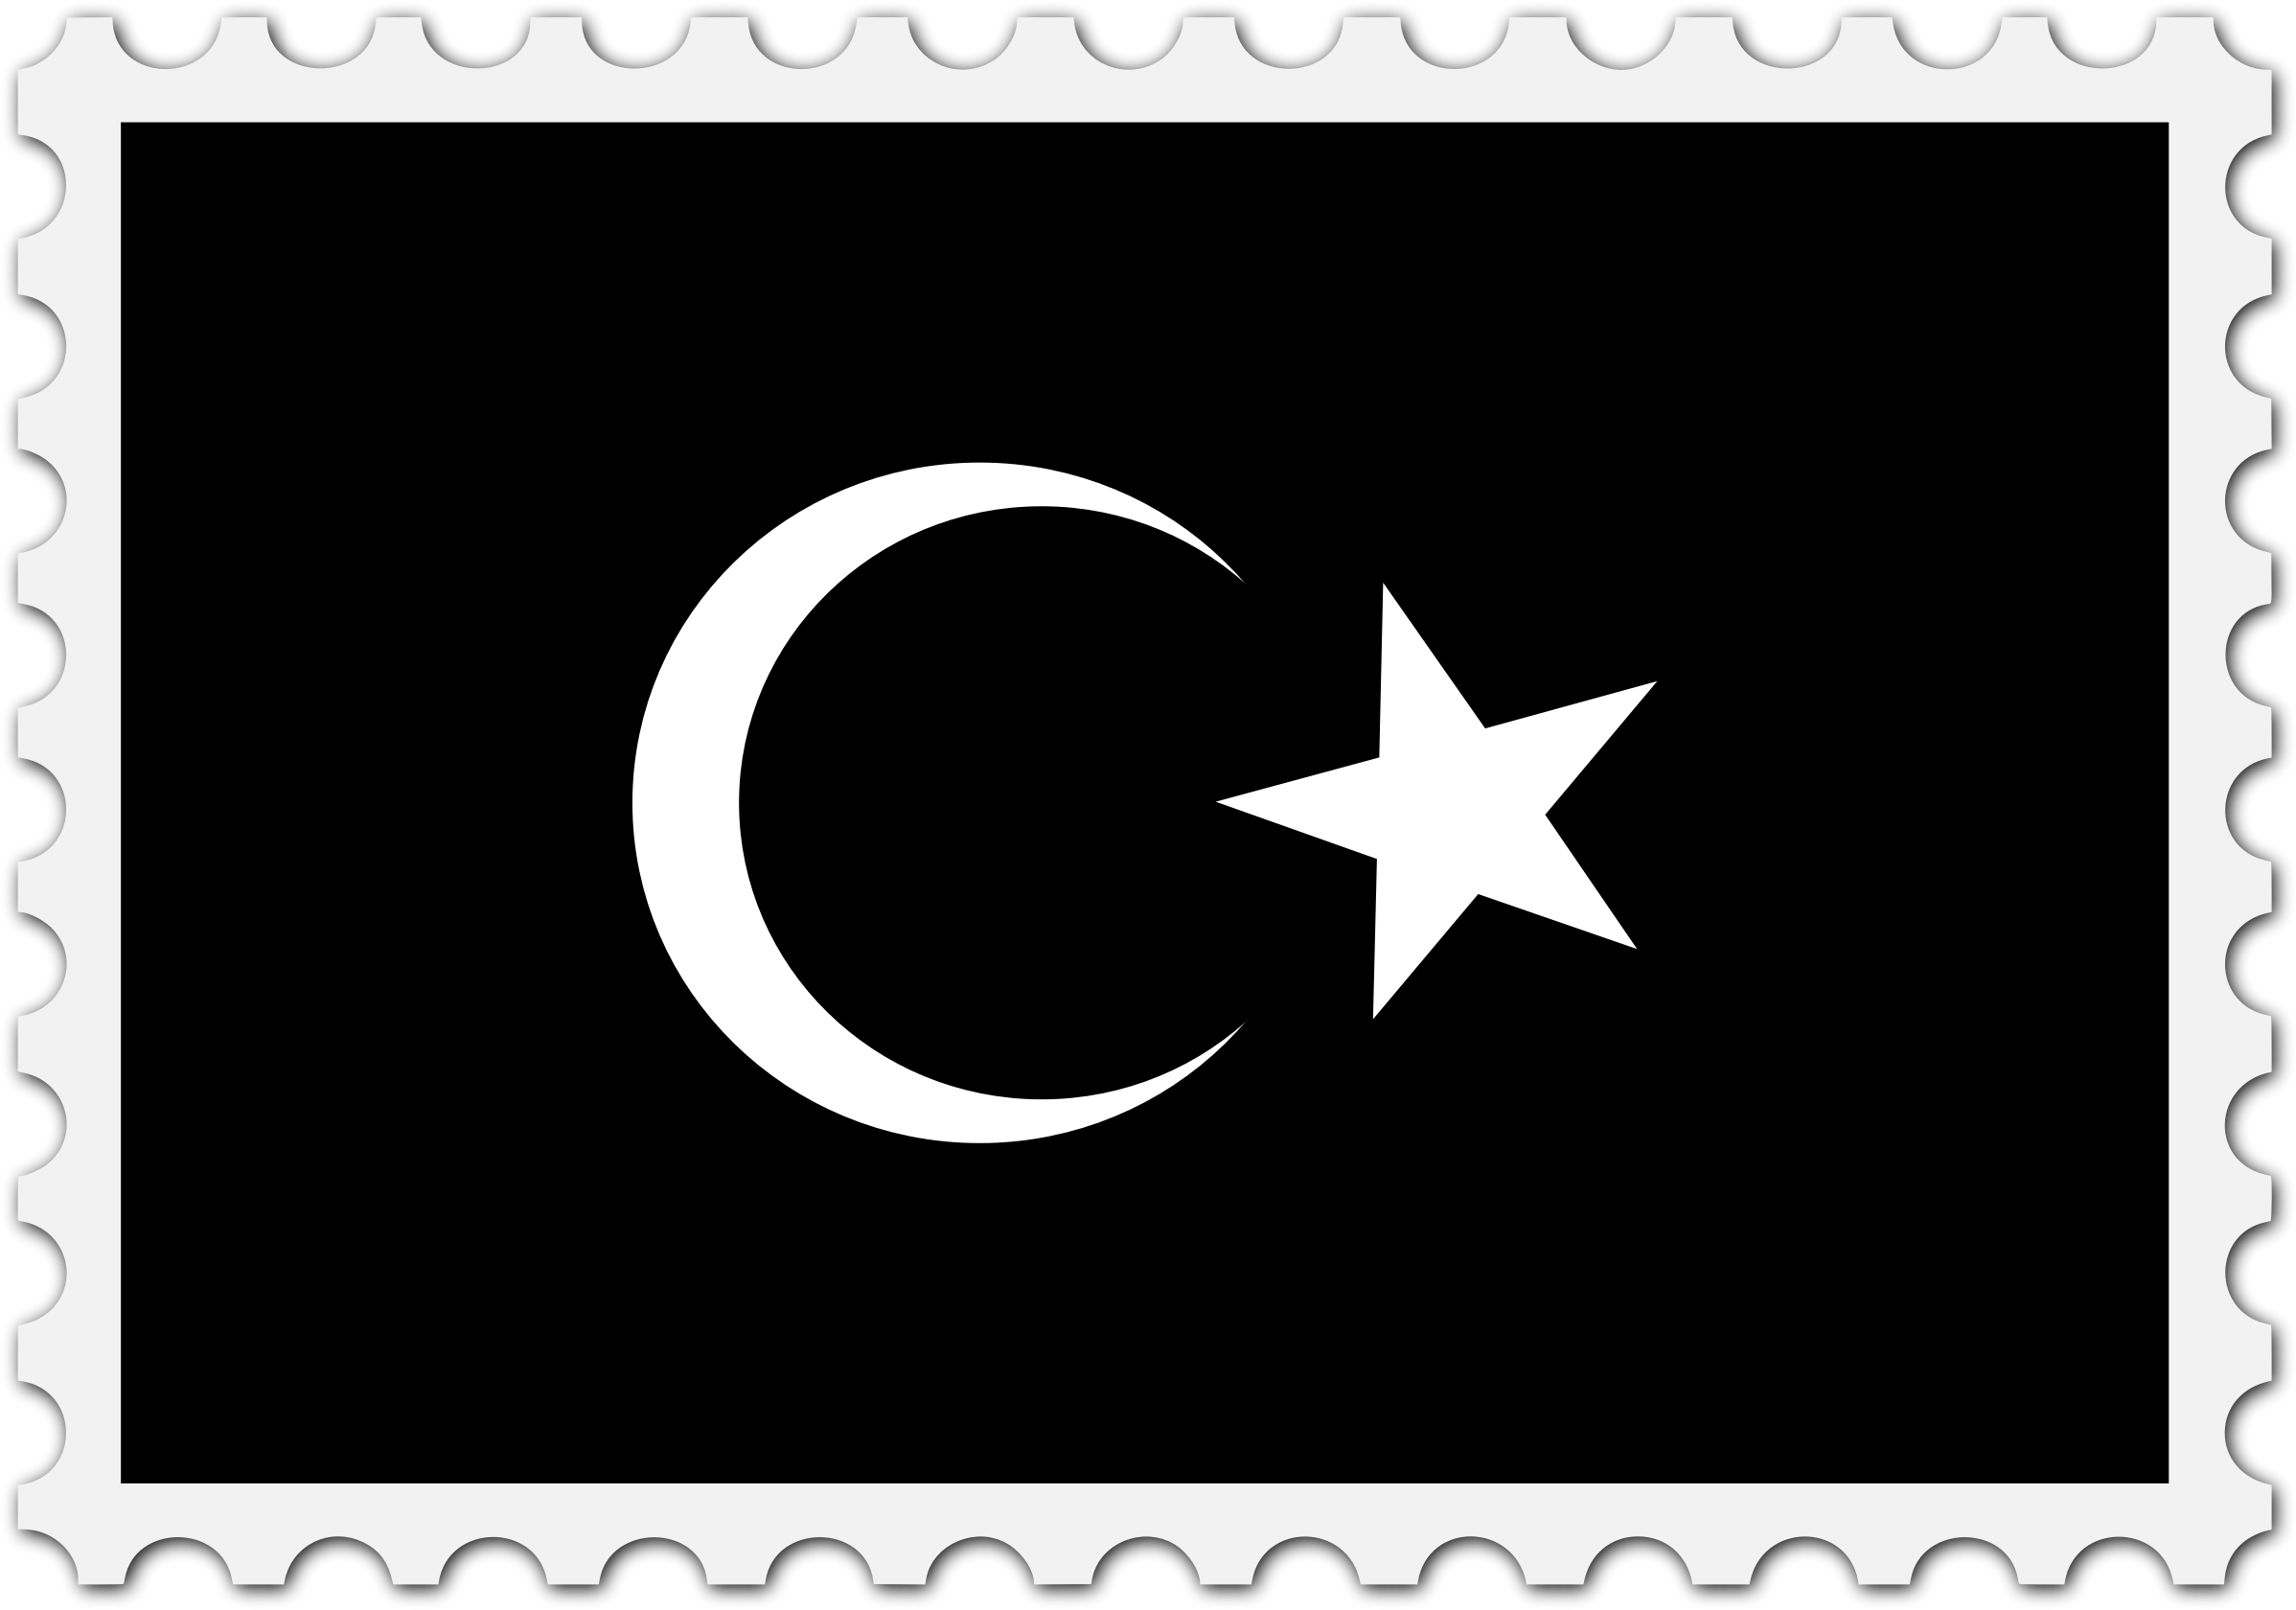 Cyrenaica flag stamp by Firkin